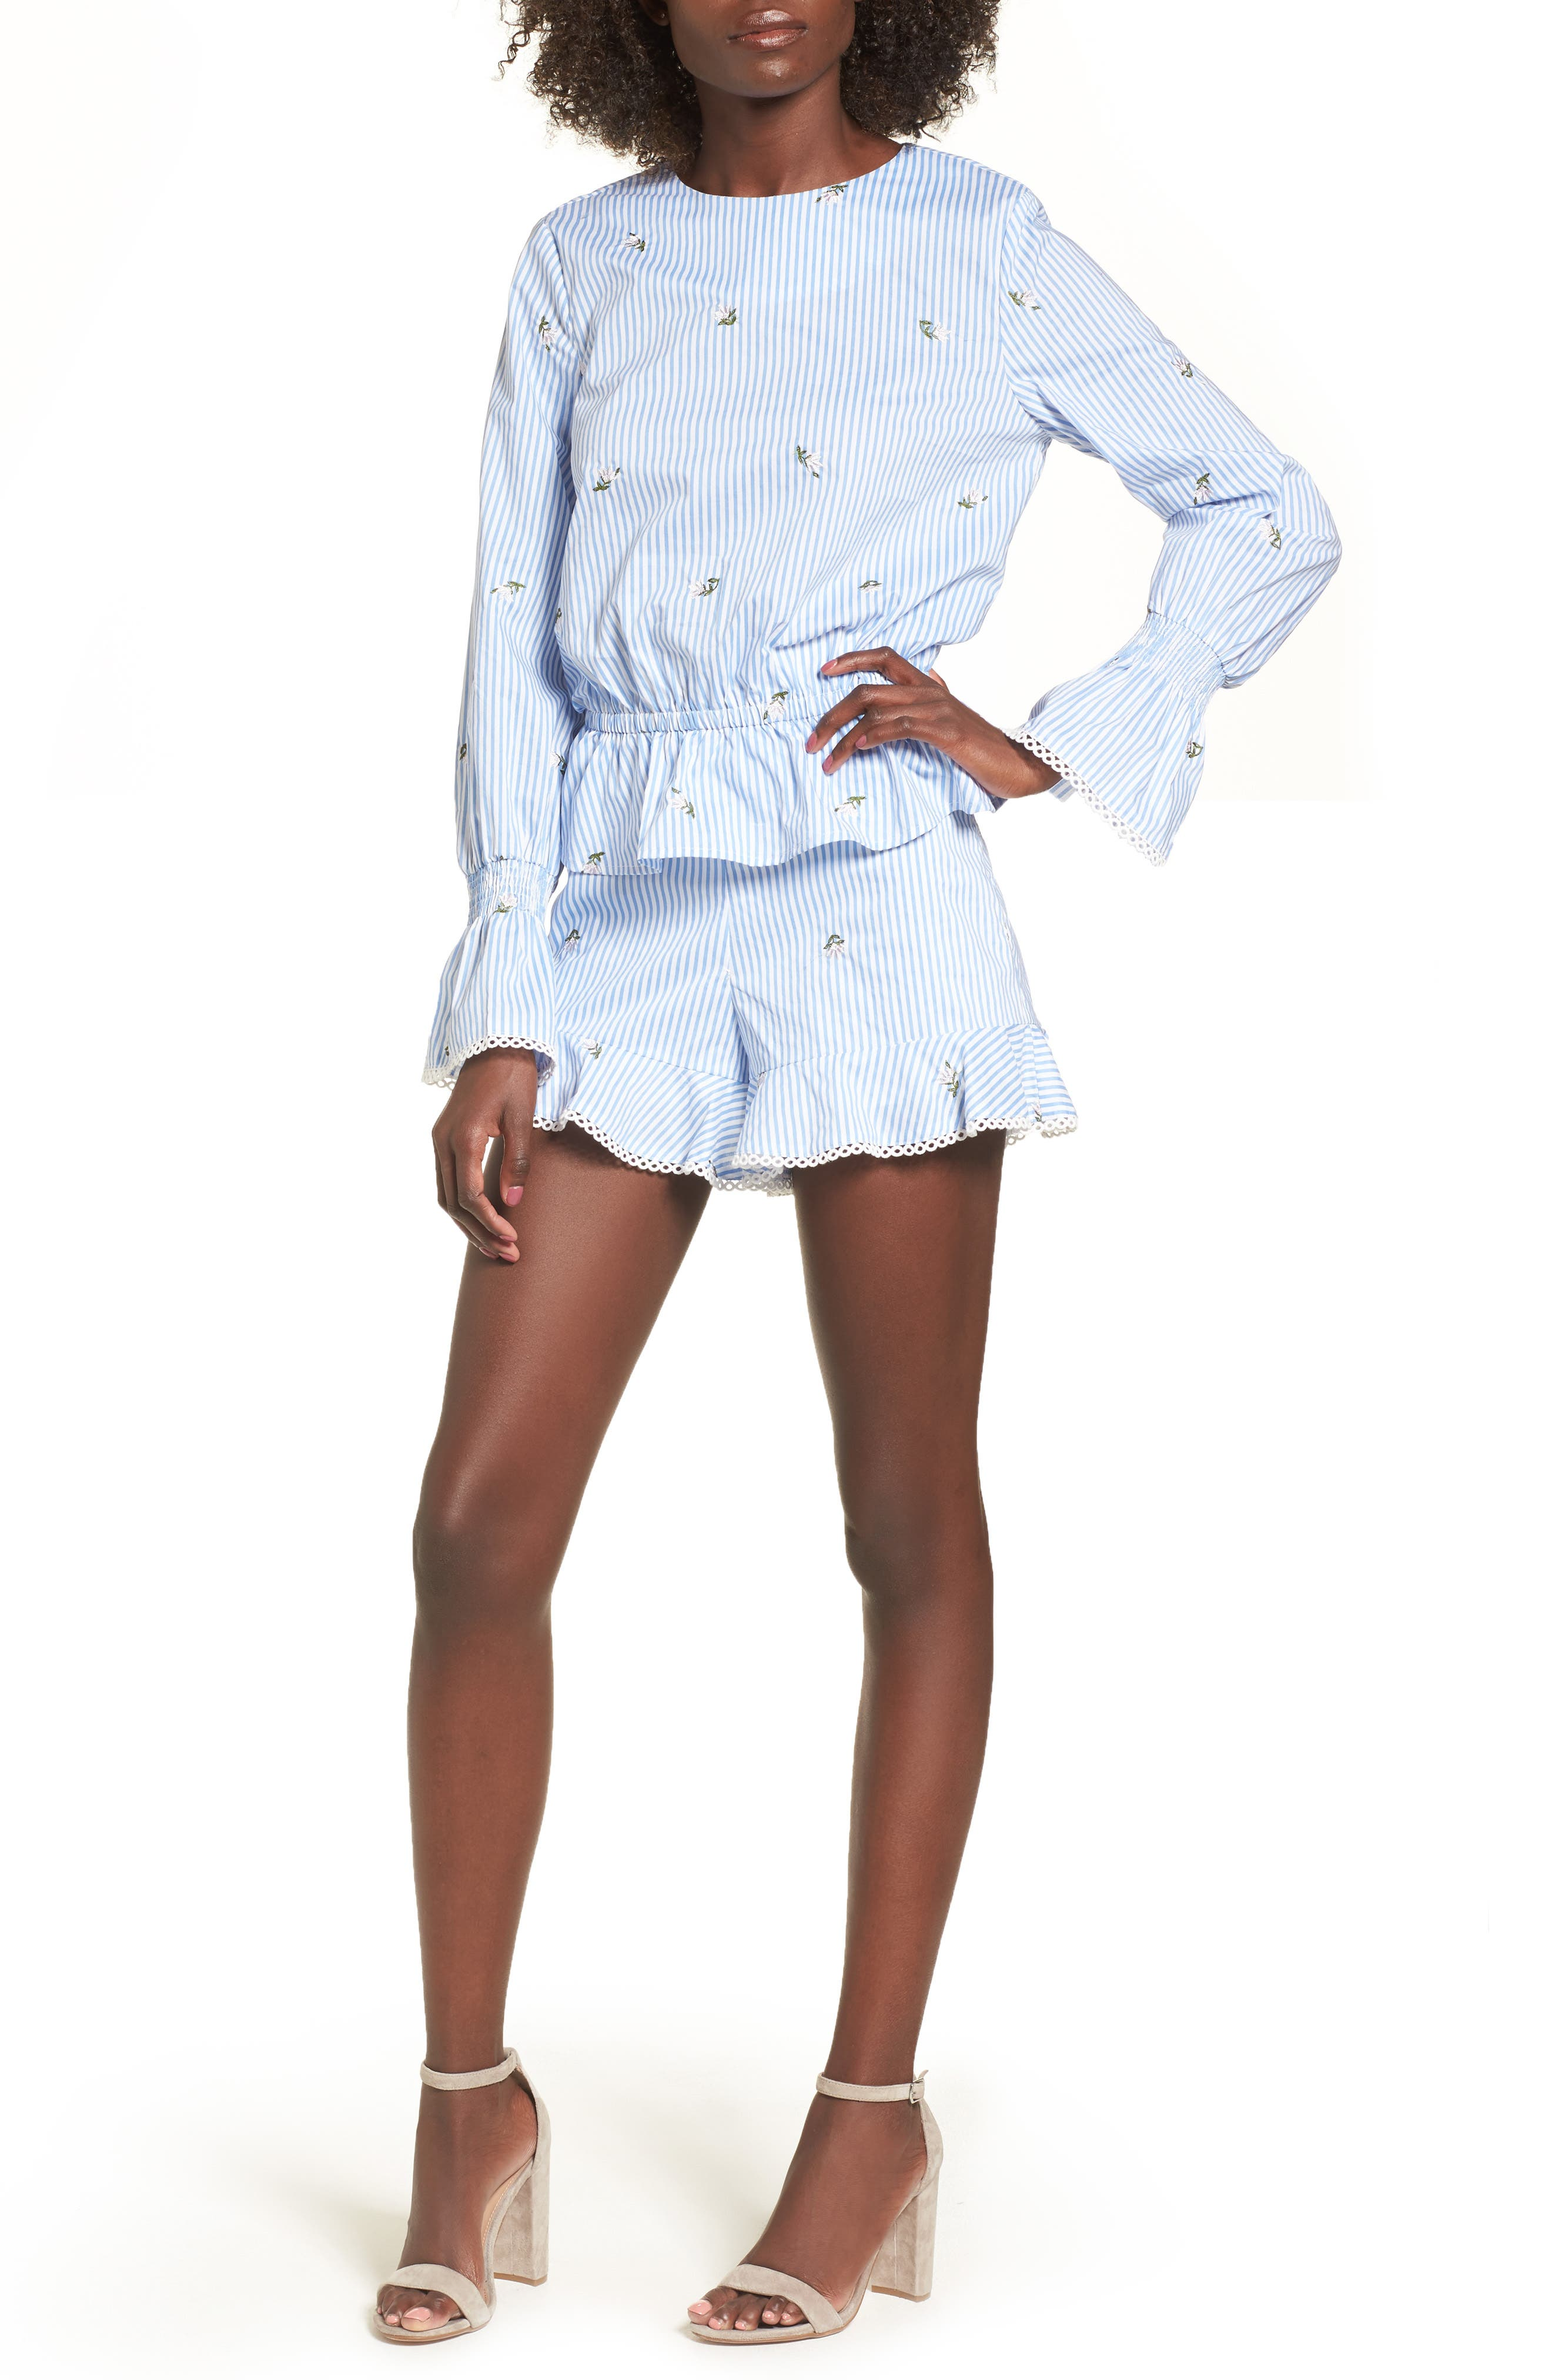 Embroidered Shorts,                             Alternate thumbnail 7, color,                             Blue/ Ivory Stripe